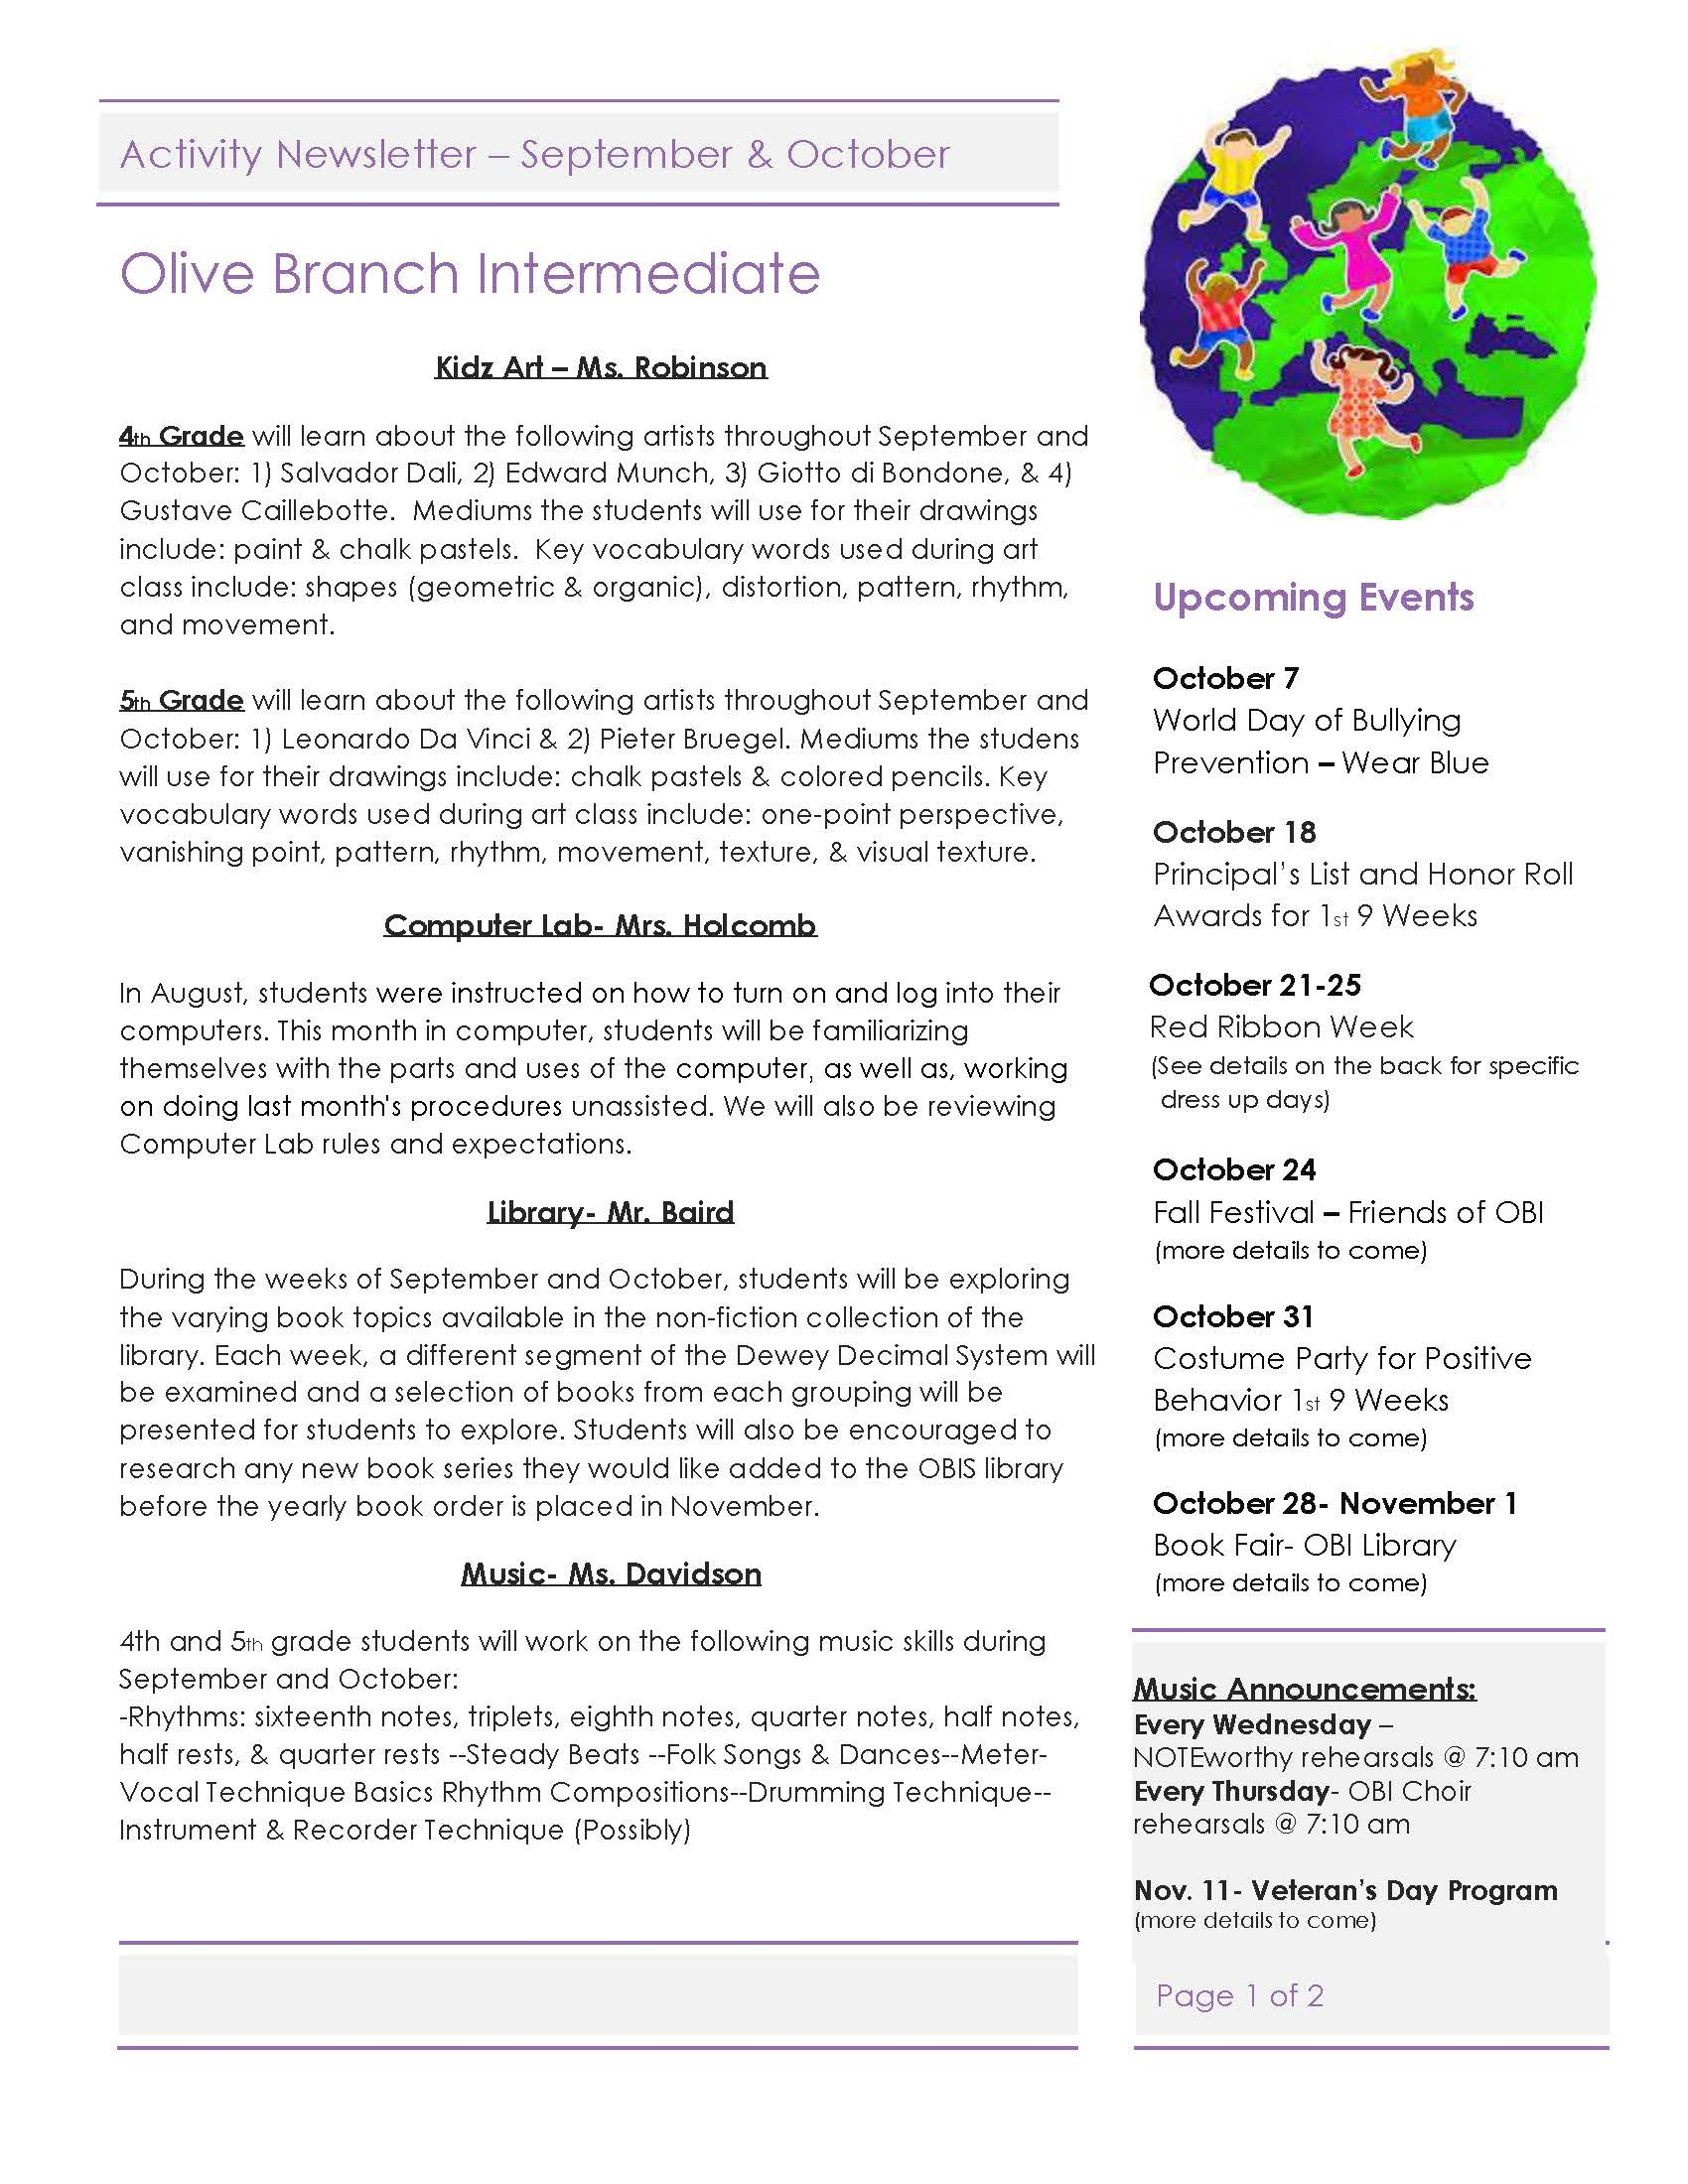 Page 1 - Activity Newsletter